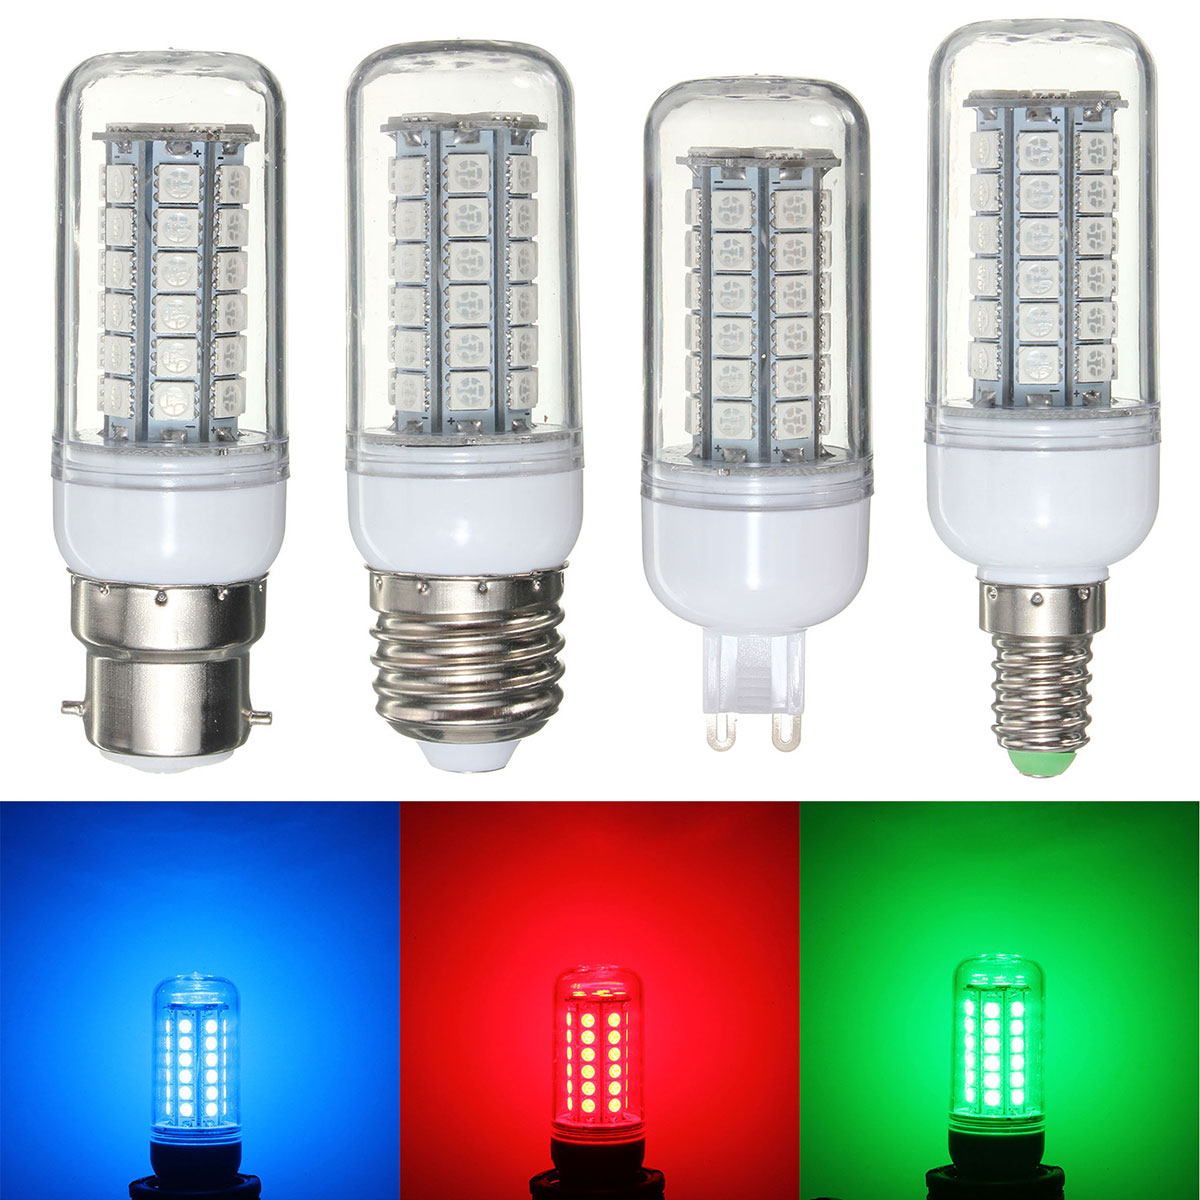 5050 Smd 48 Led Light Bulb E27/e14/g9/b22 3.5w Red/green/blue 300lumen Energy Saving Plastic Lamp Bulb Non Dimmable Ac 220v 100% Original Lights & Lighting Led Bulbs & Tubes